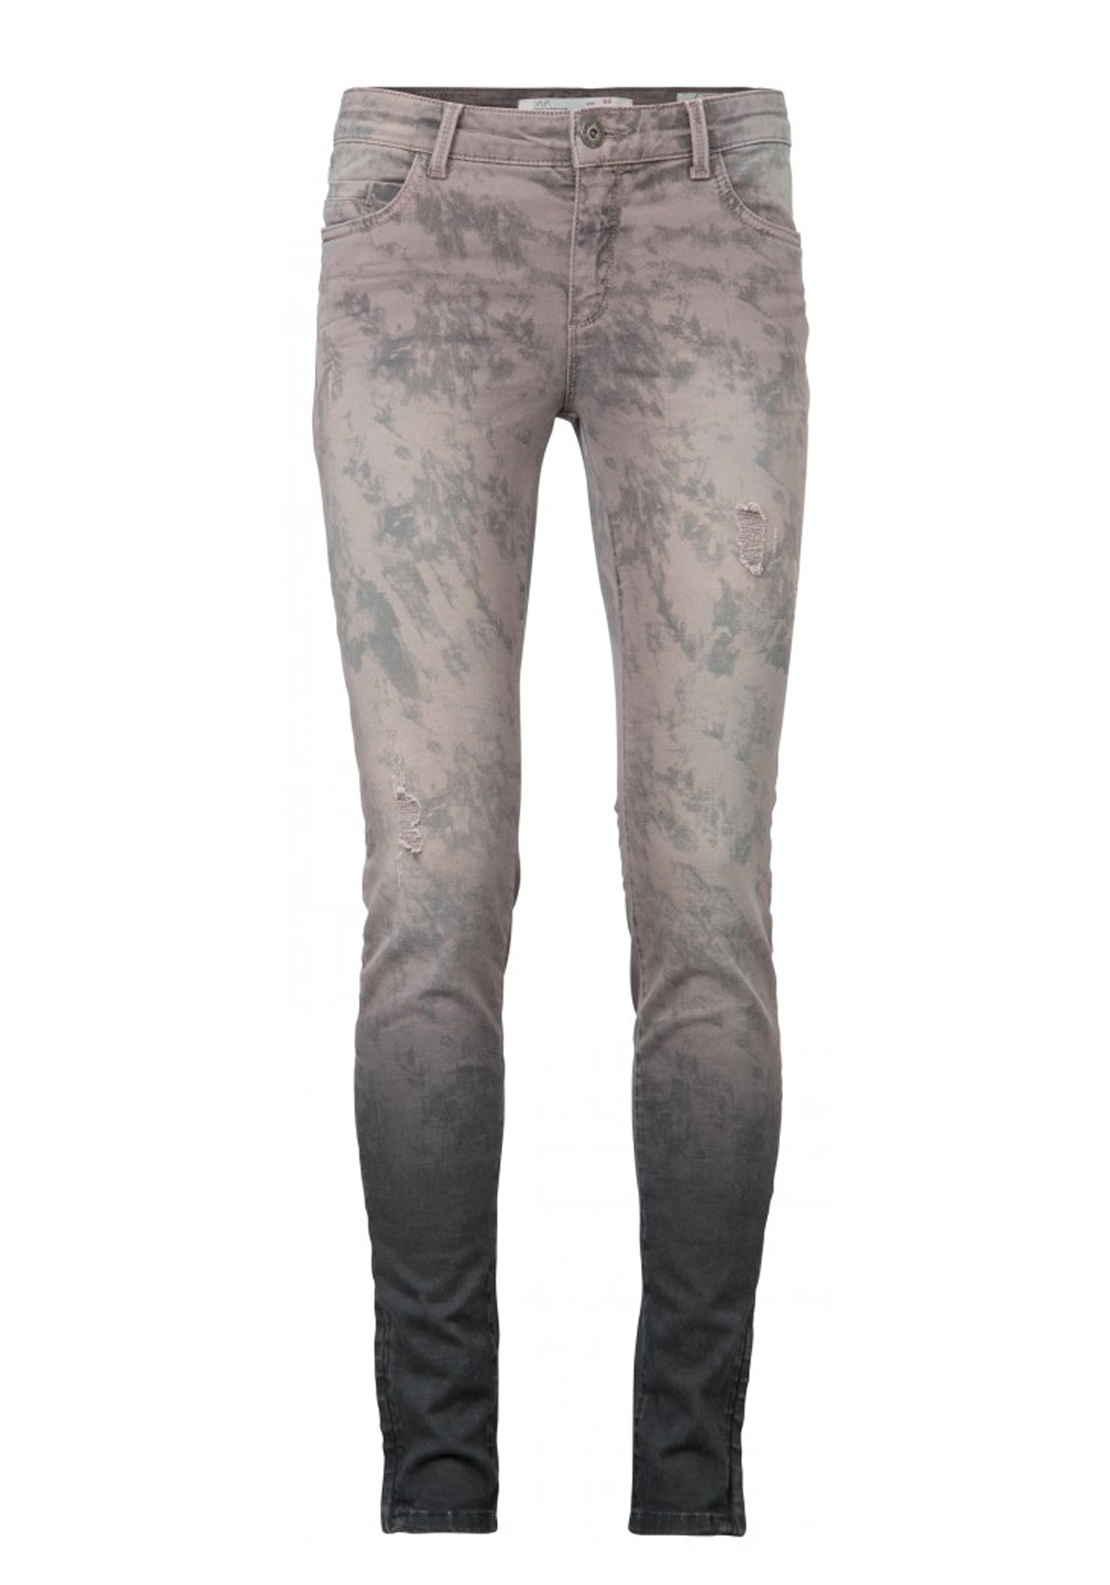 Yaya Distressed Marble Print Skinny Jeans, Lilac Multi